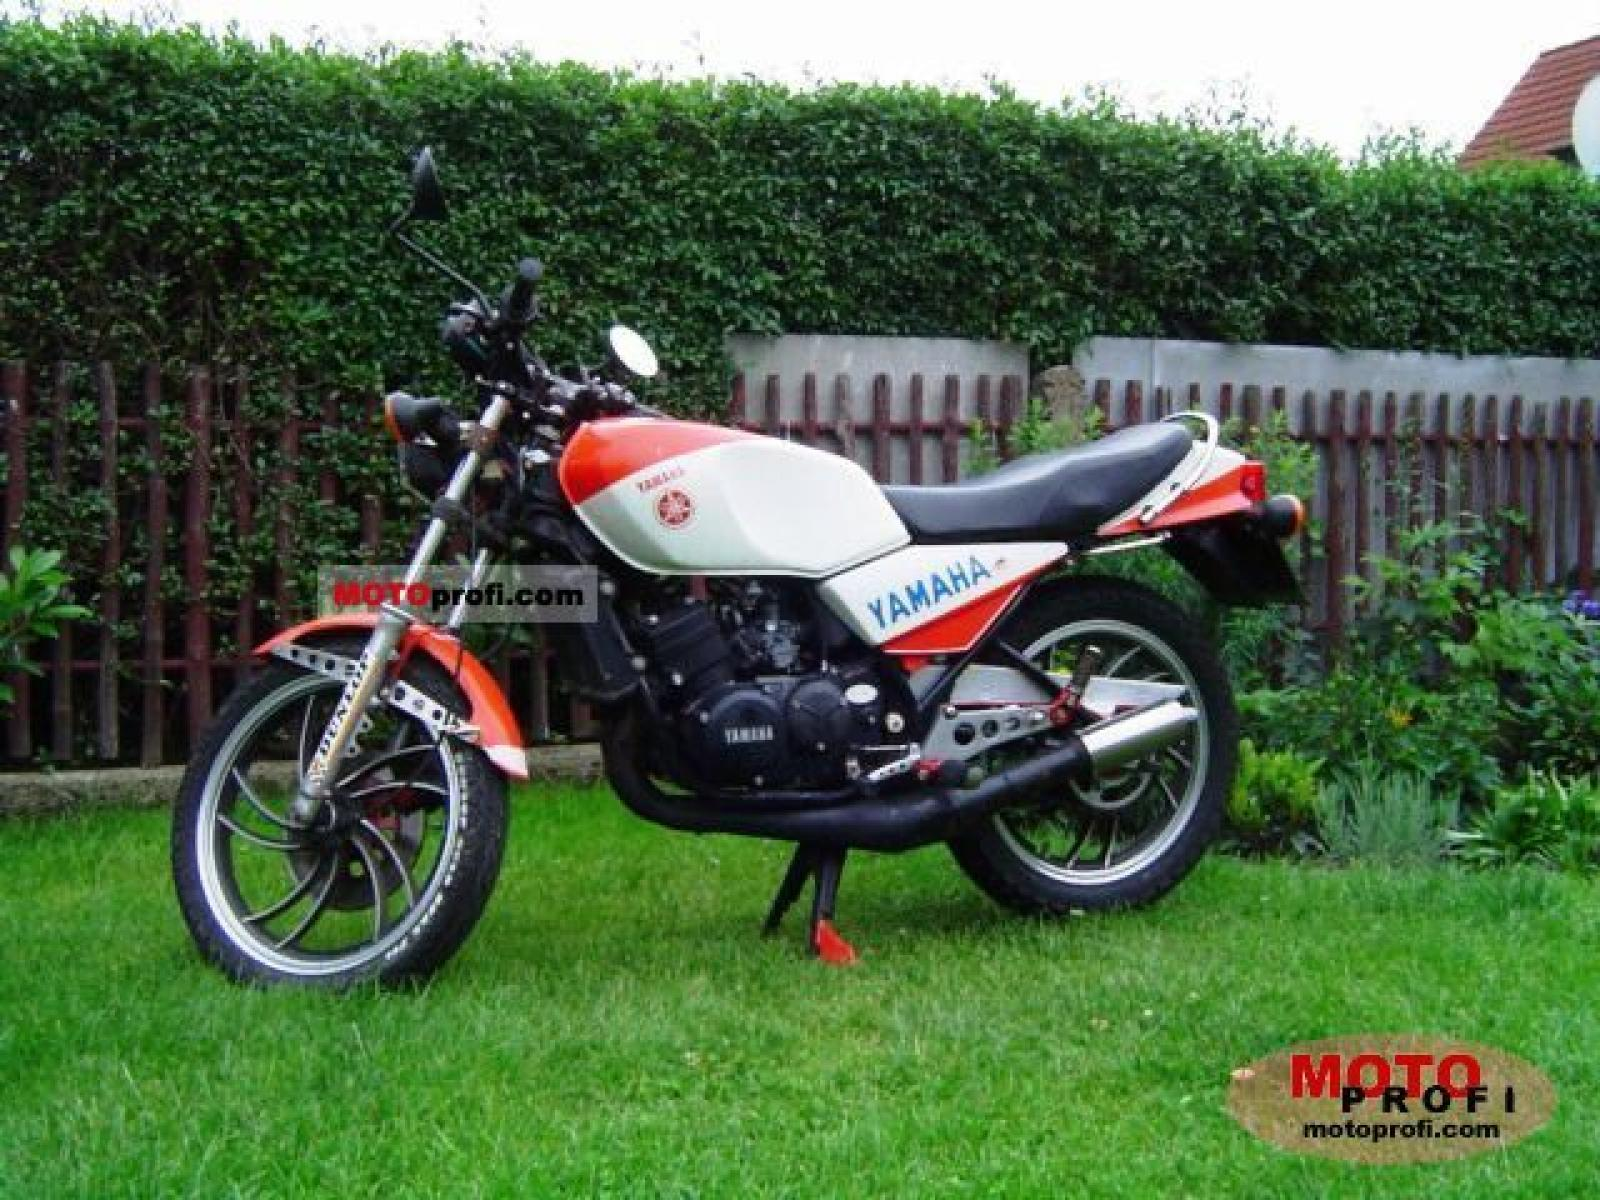 1983 Yamaha RD 250 LC (reduced effect) #2